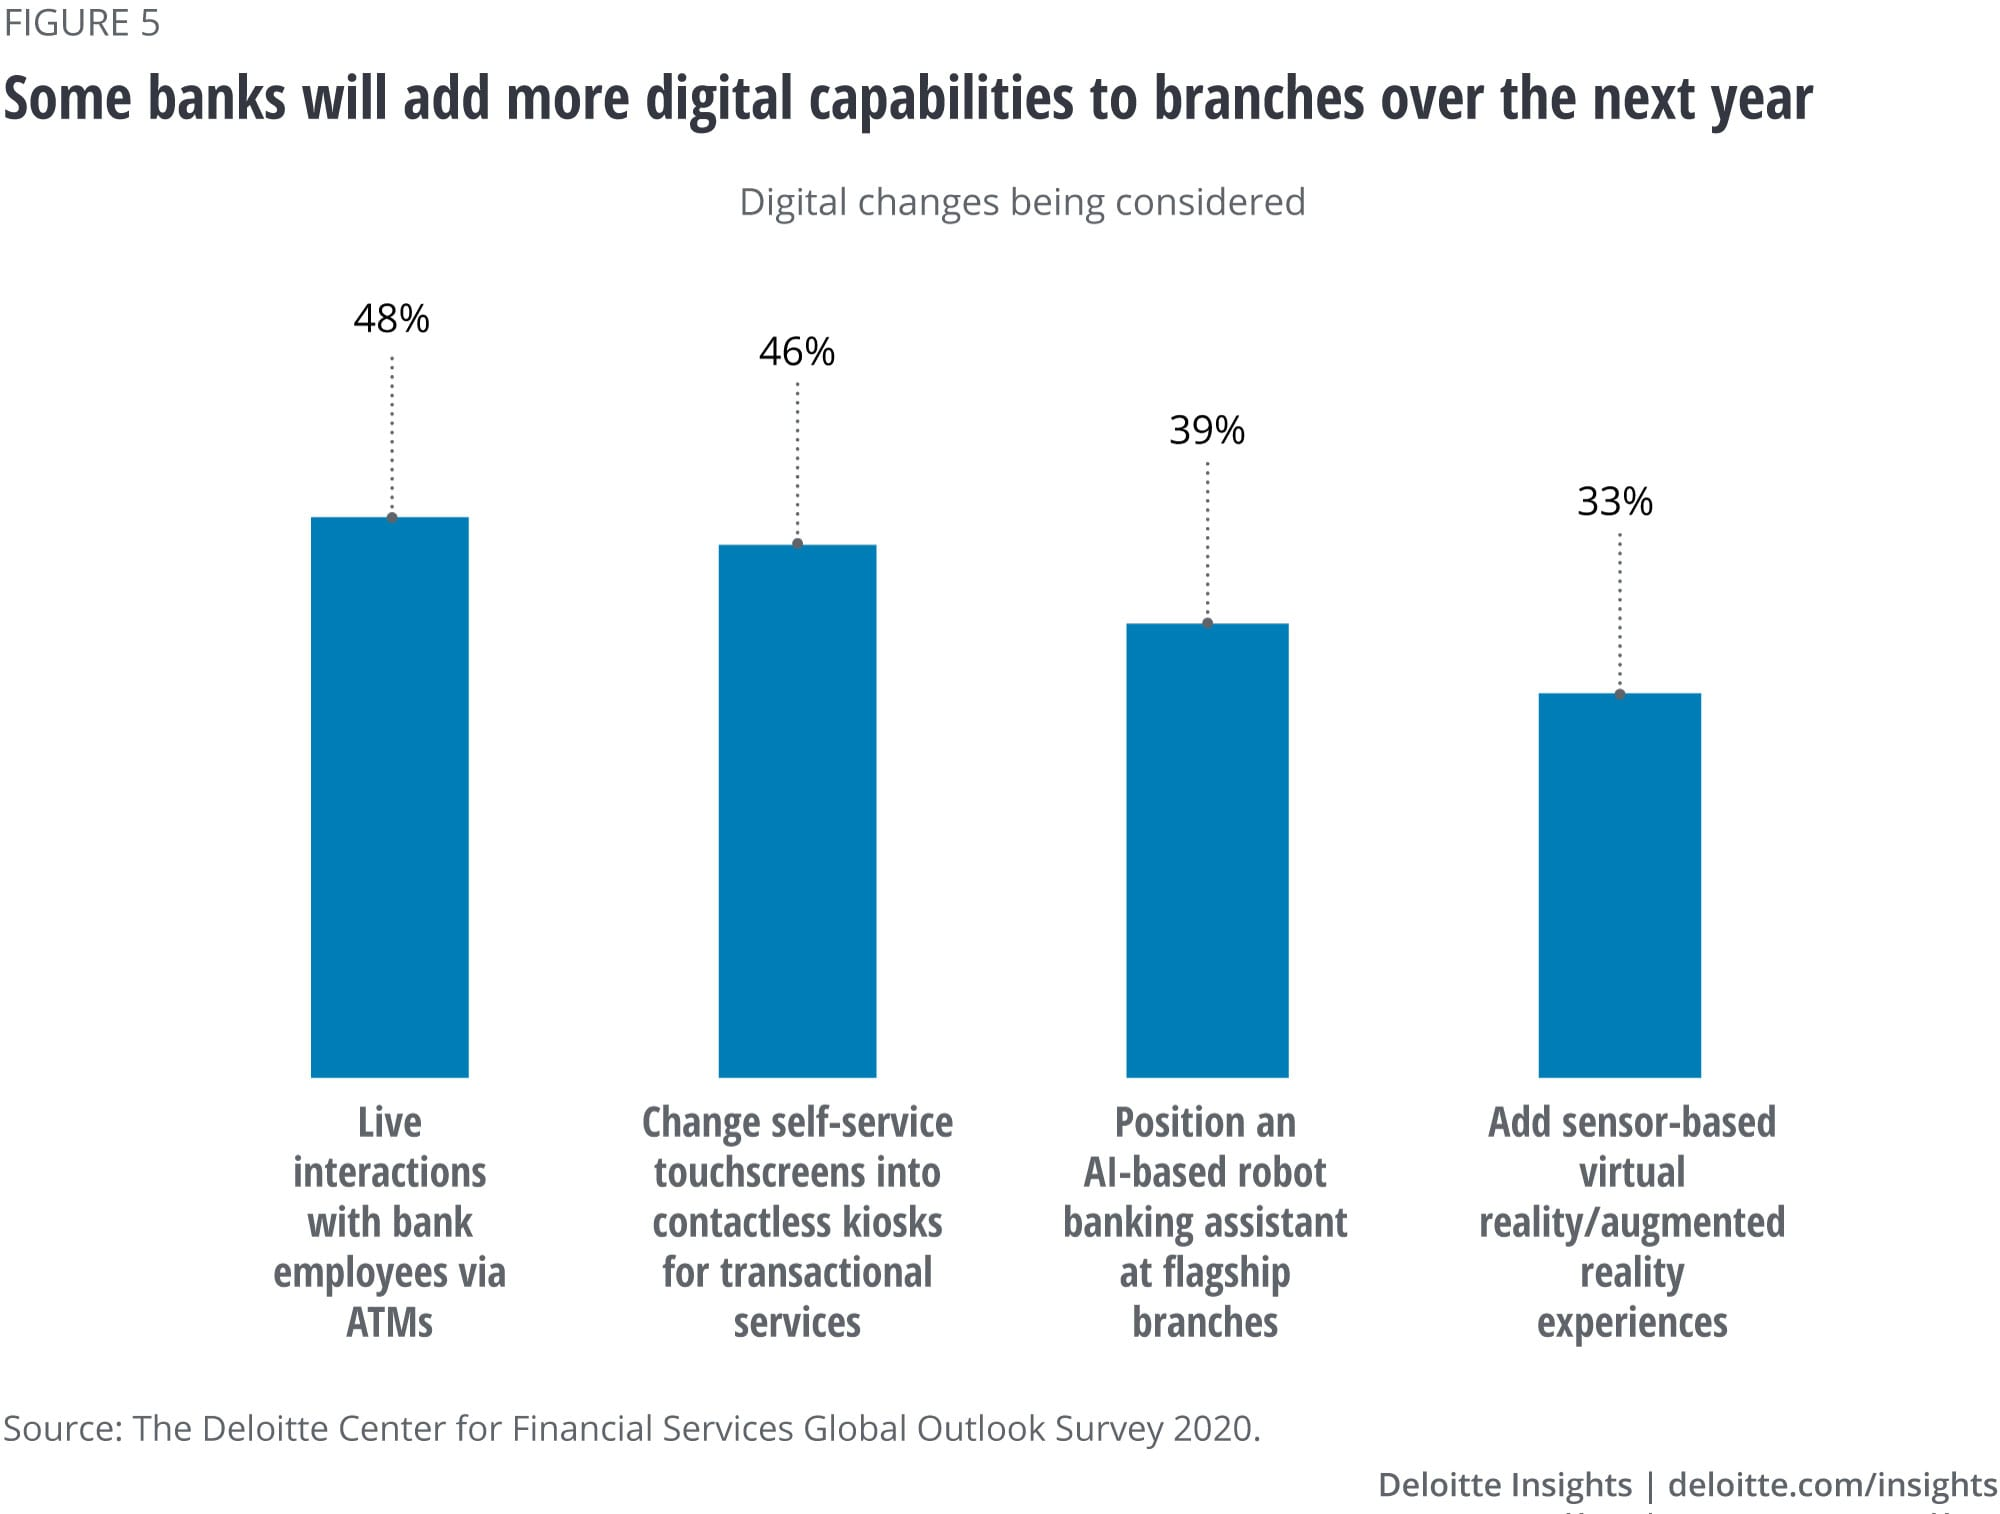 Digital changes under consideration by respondents in the branch infrastructure for the next one year